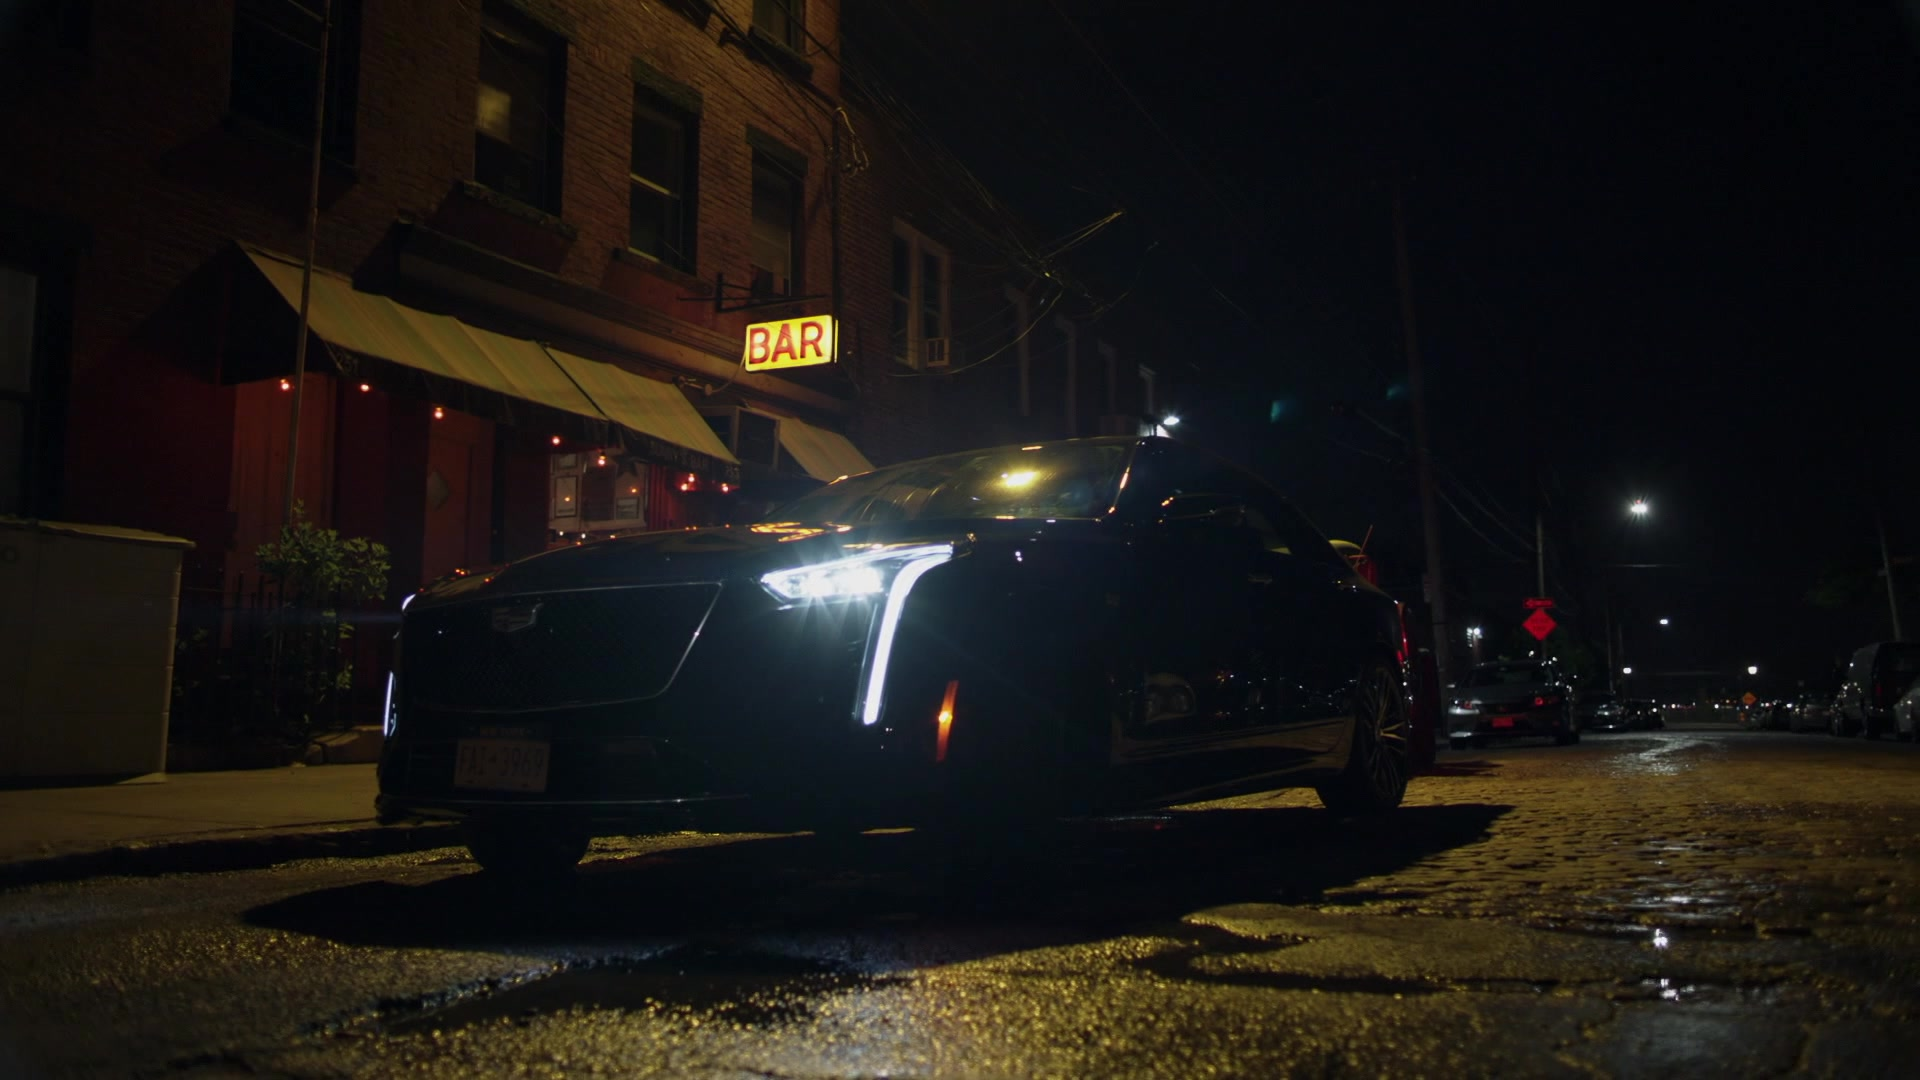 Cadillac Ct6 Car Used By Liev Schreiber In Ray Donovan Season 6 Episode 4 Quot Pudge Quot 2018 Tv Show